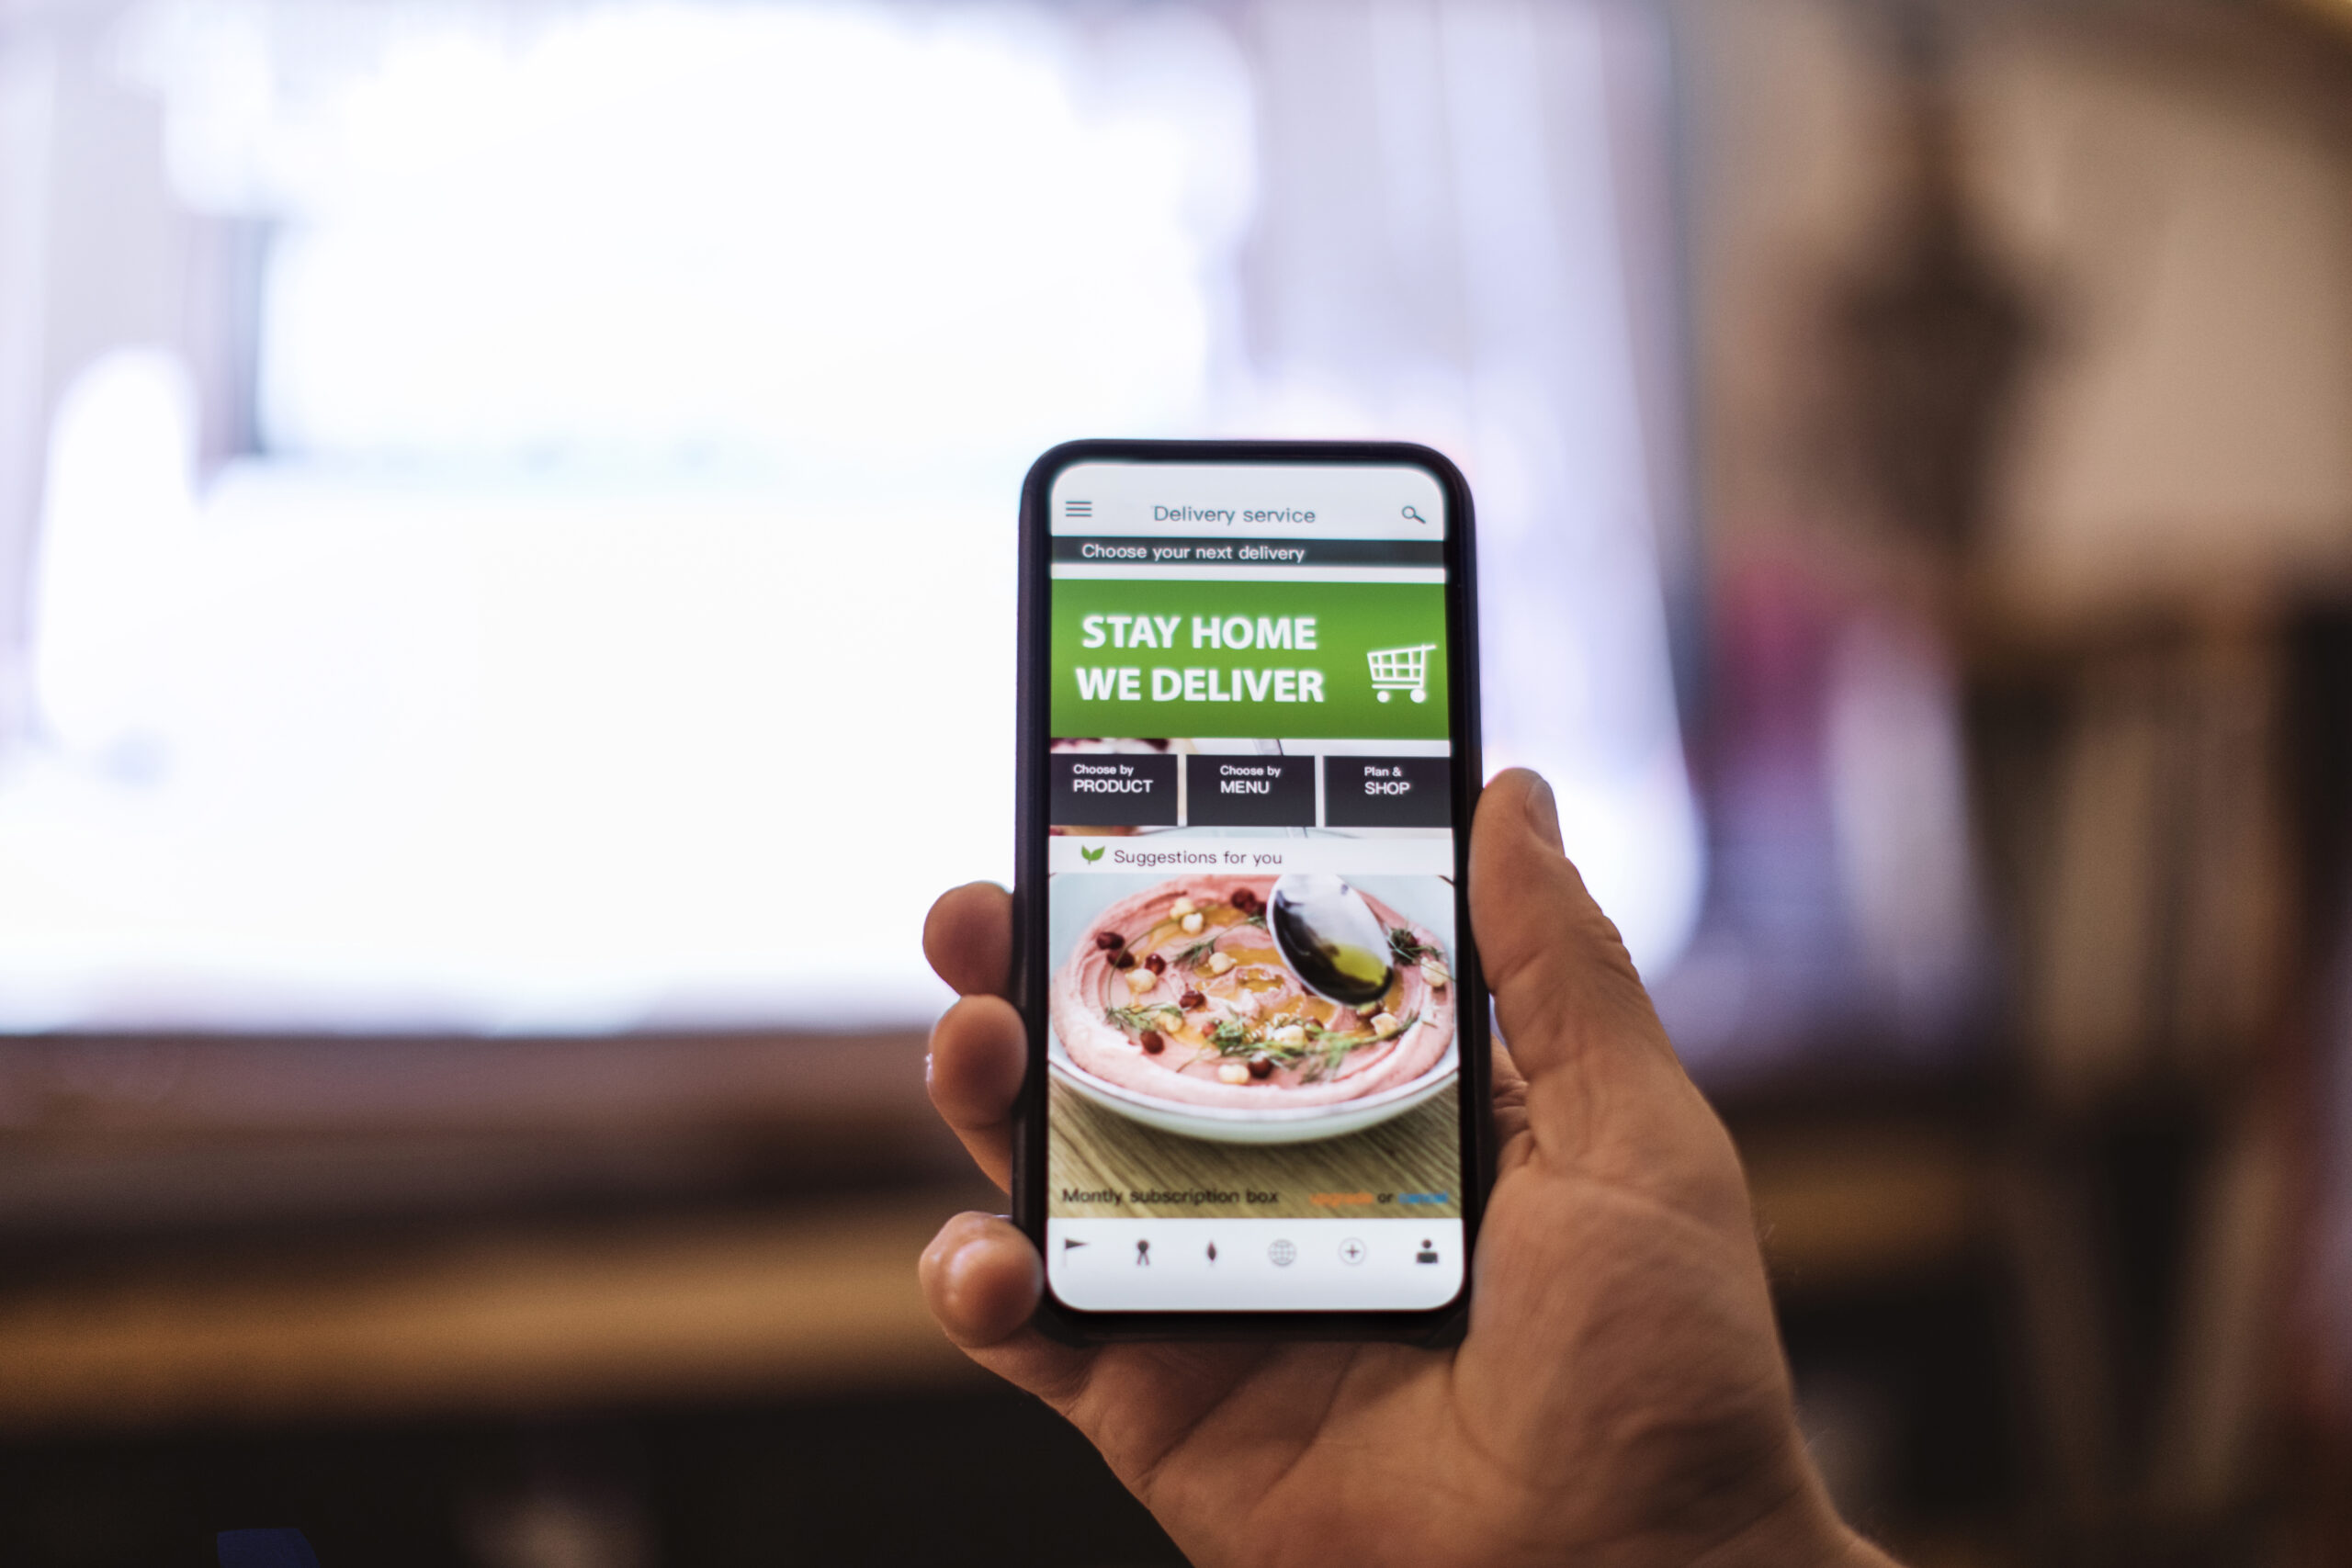 Ordering food online at night while in home isolation during corona virus quarantine